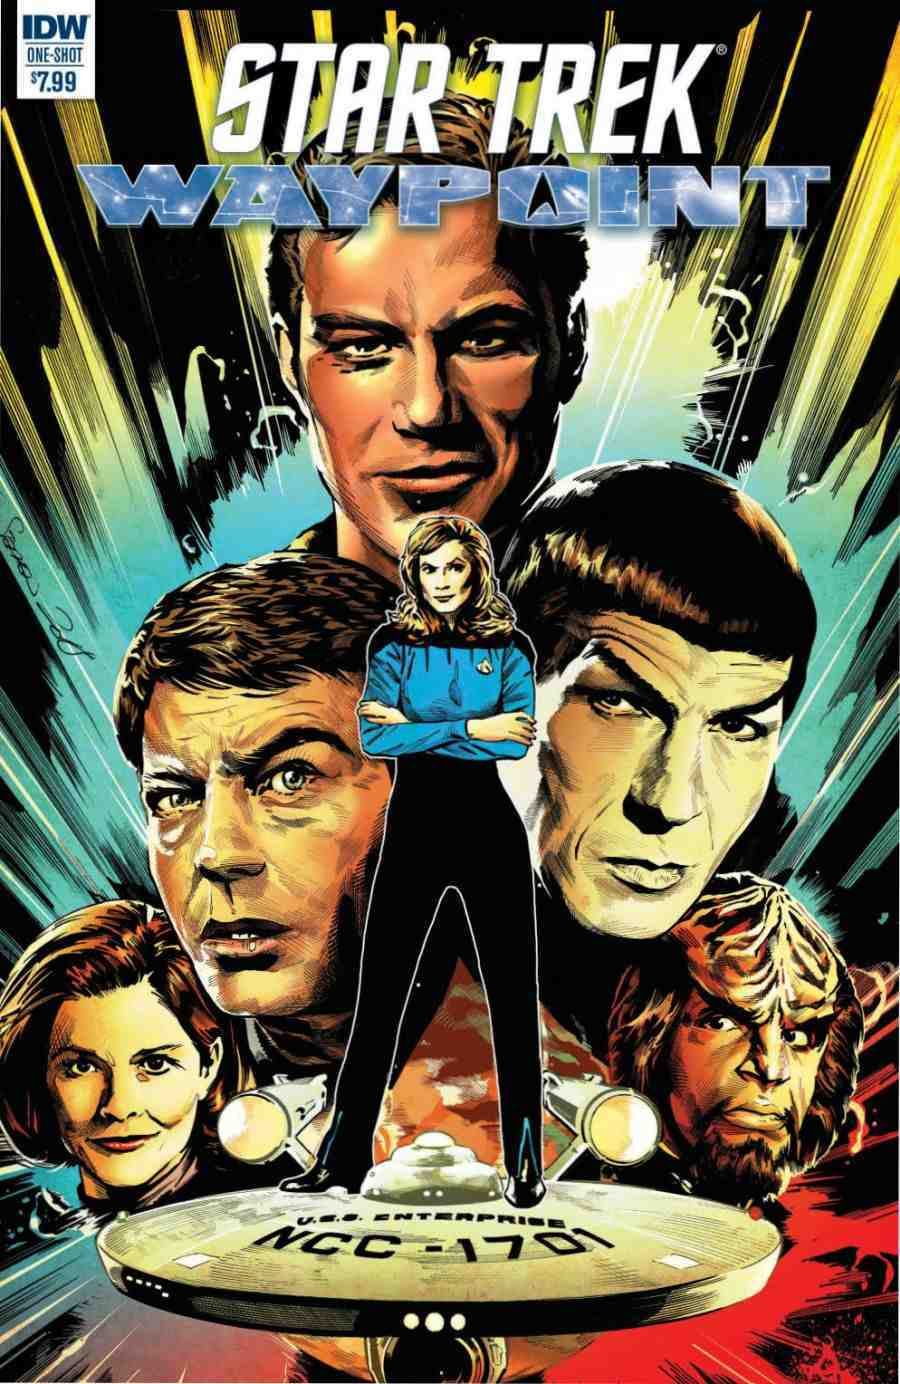 Star_Trek_Waypoint_One_Shot-pr_1